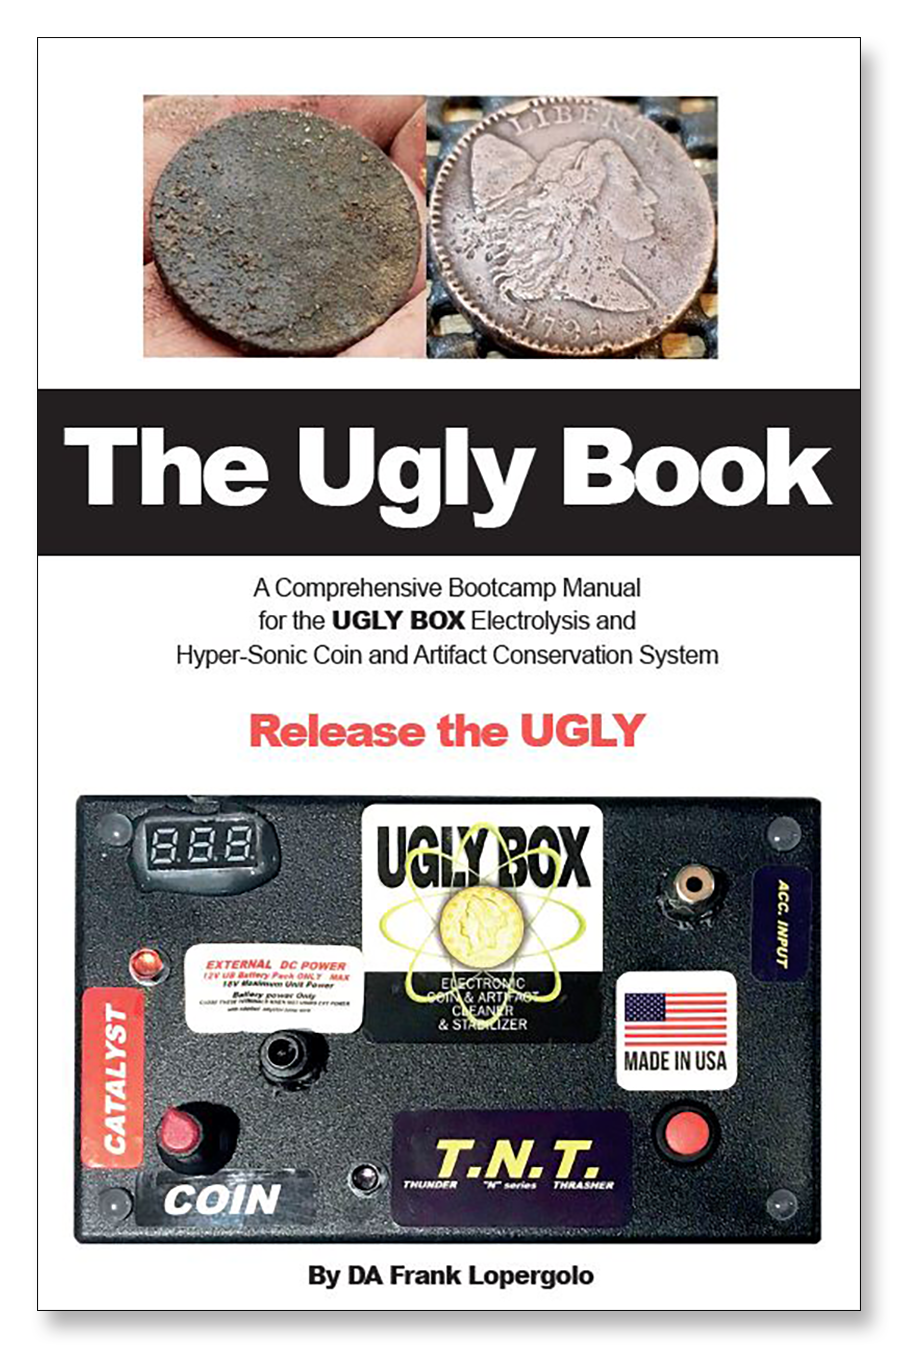 The Ugly Book by DA Frank Lopergolo  (NOW SHIPPING)